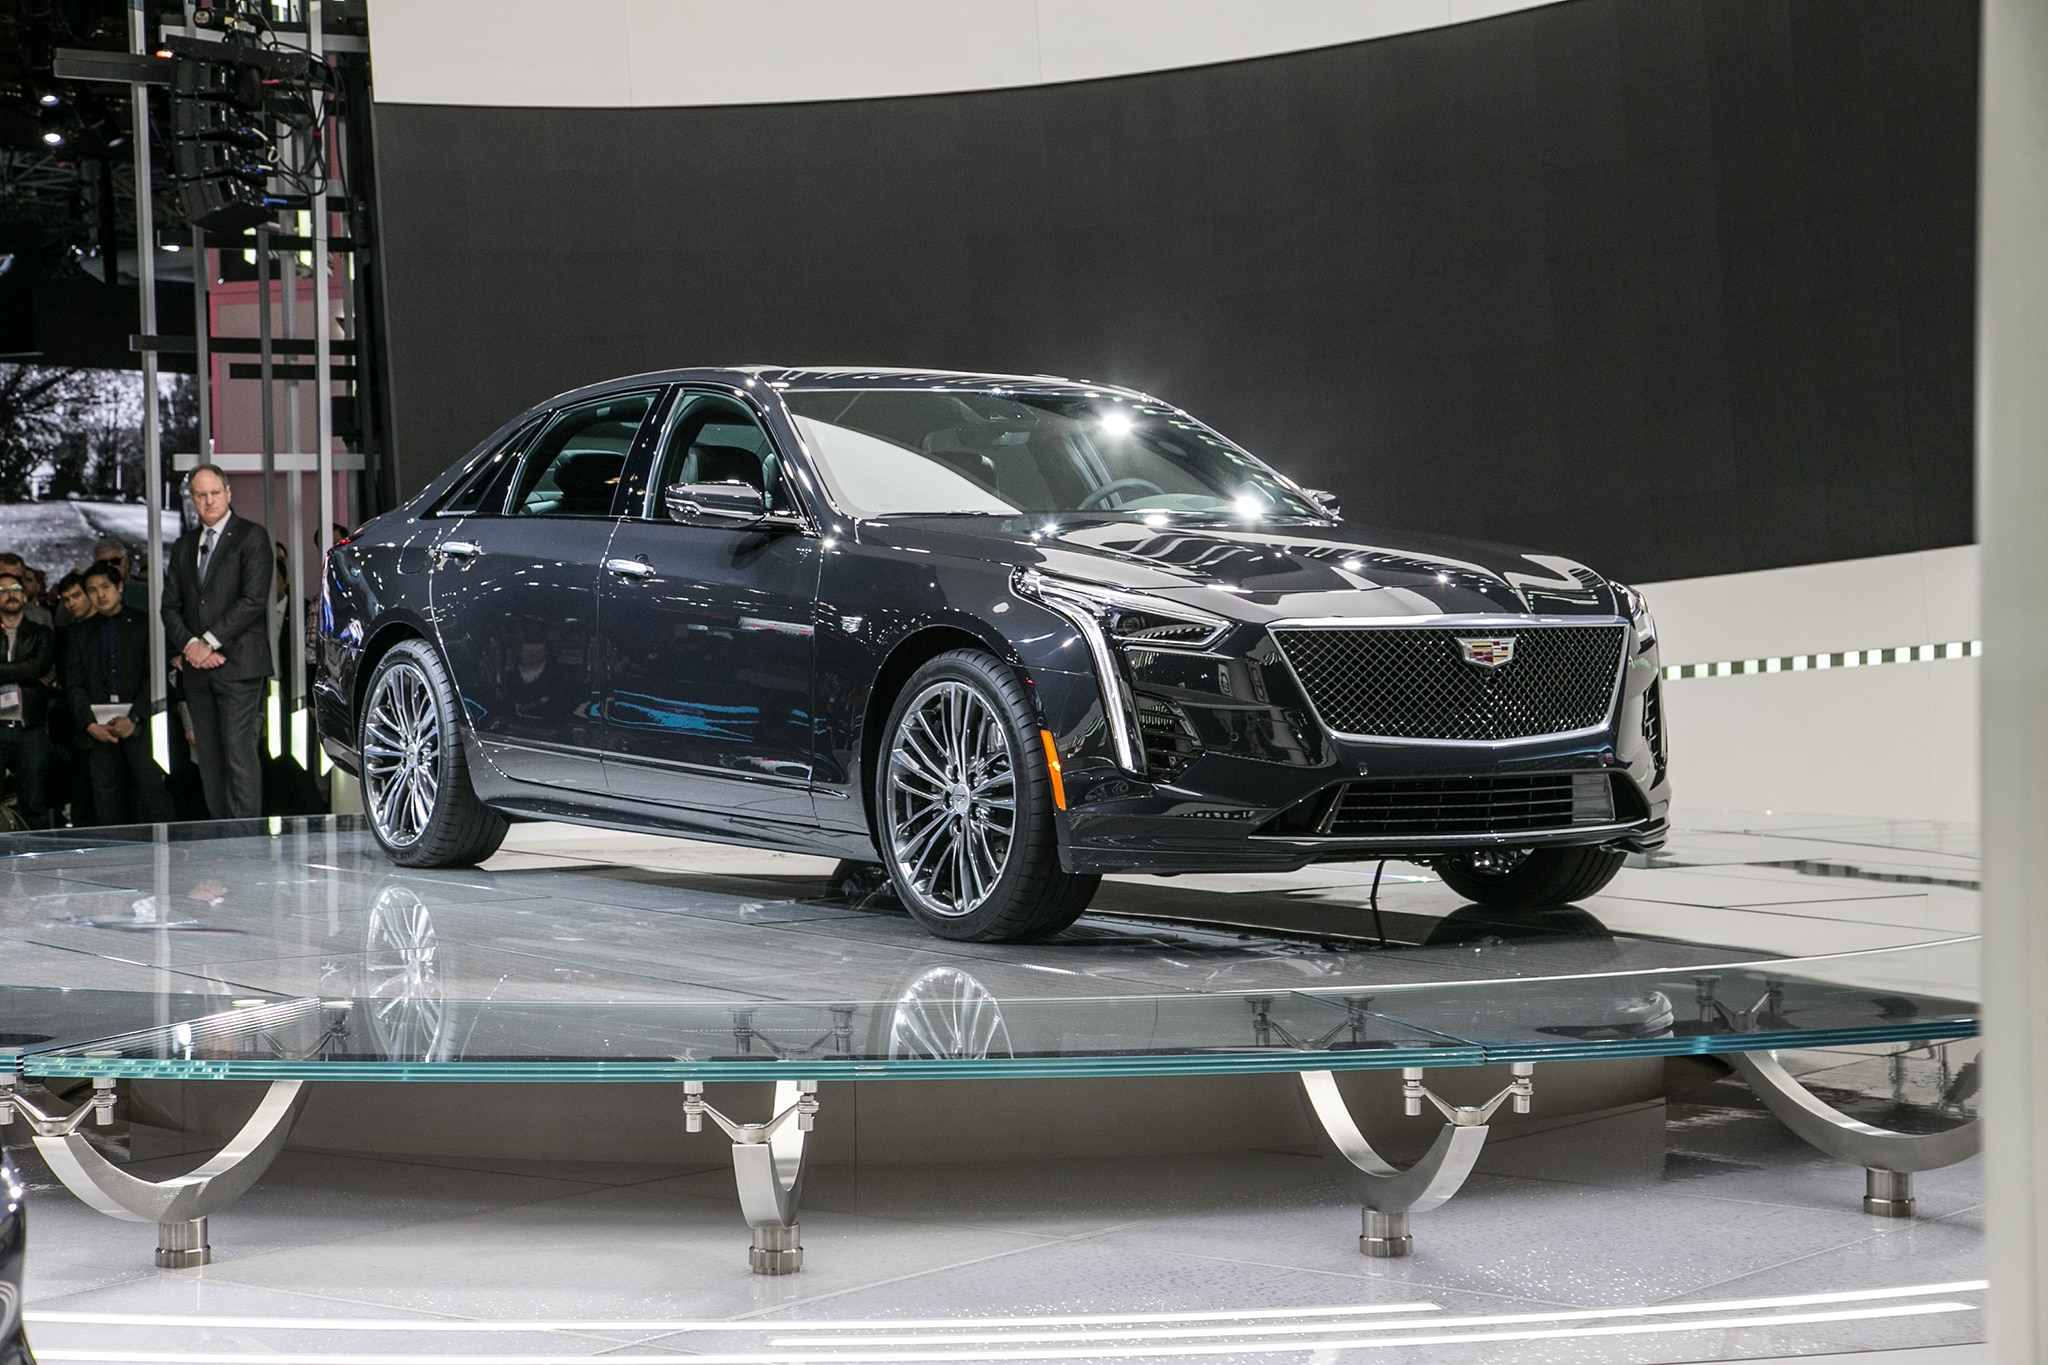 cadillac unleashes its own v